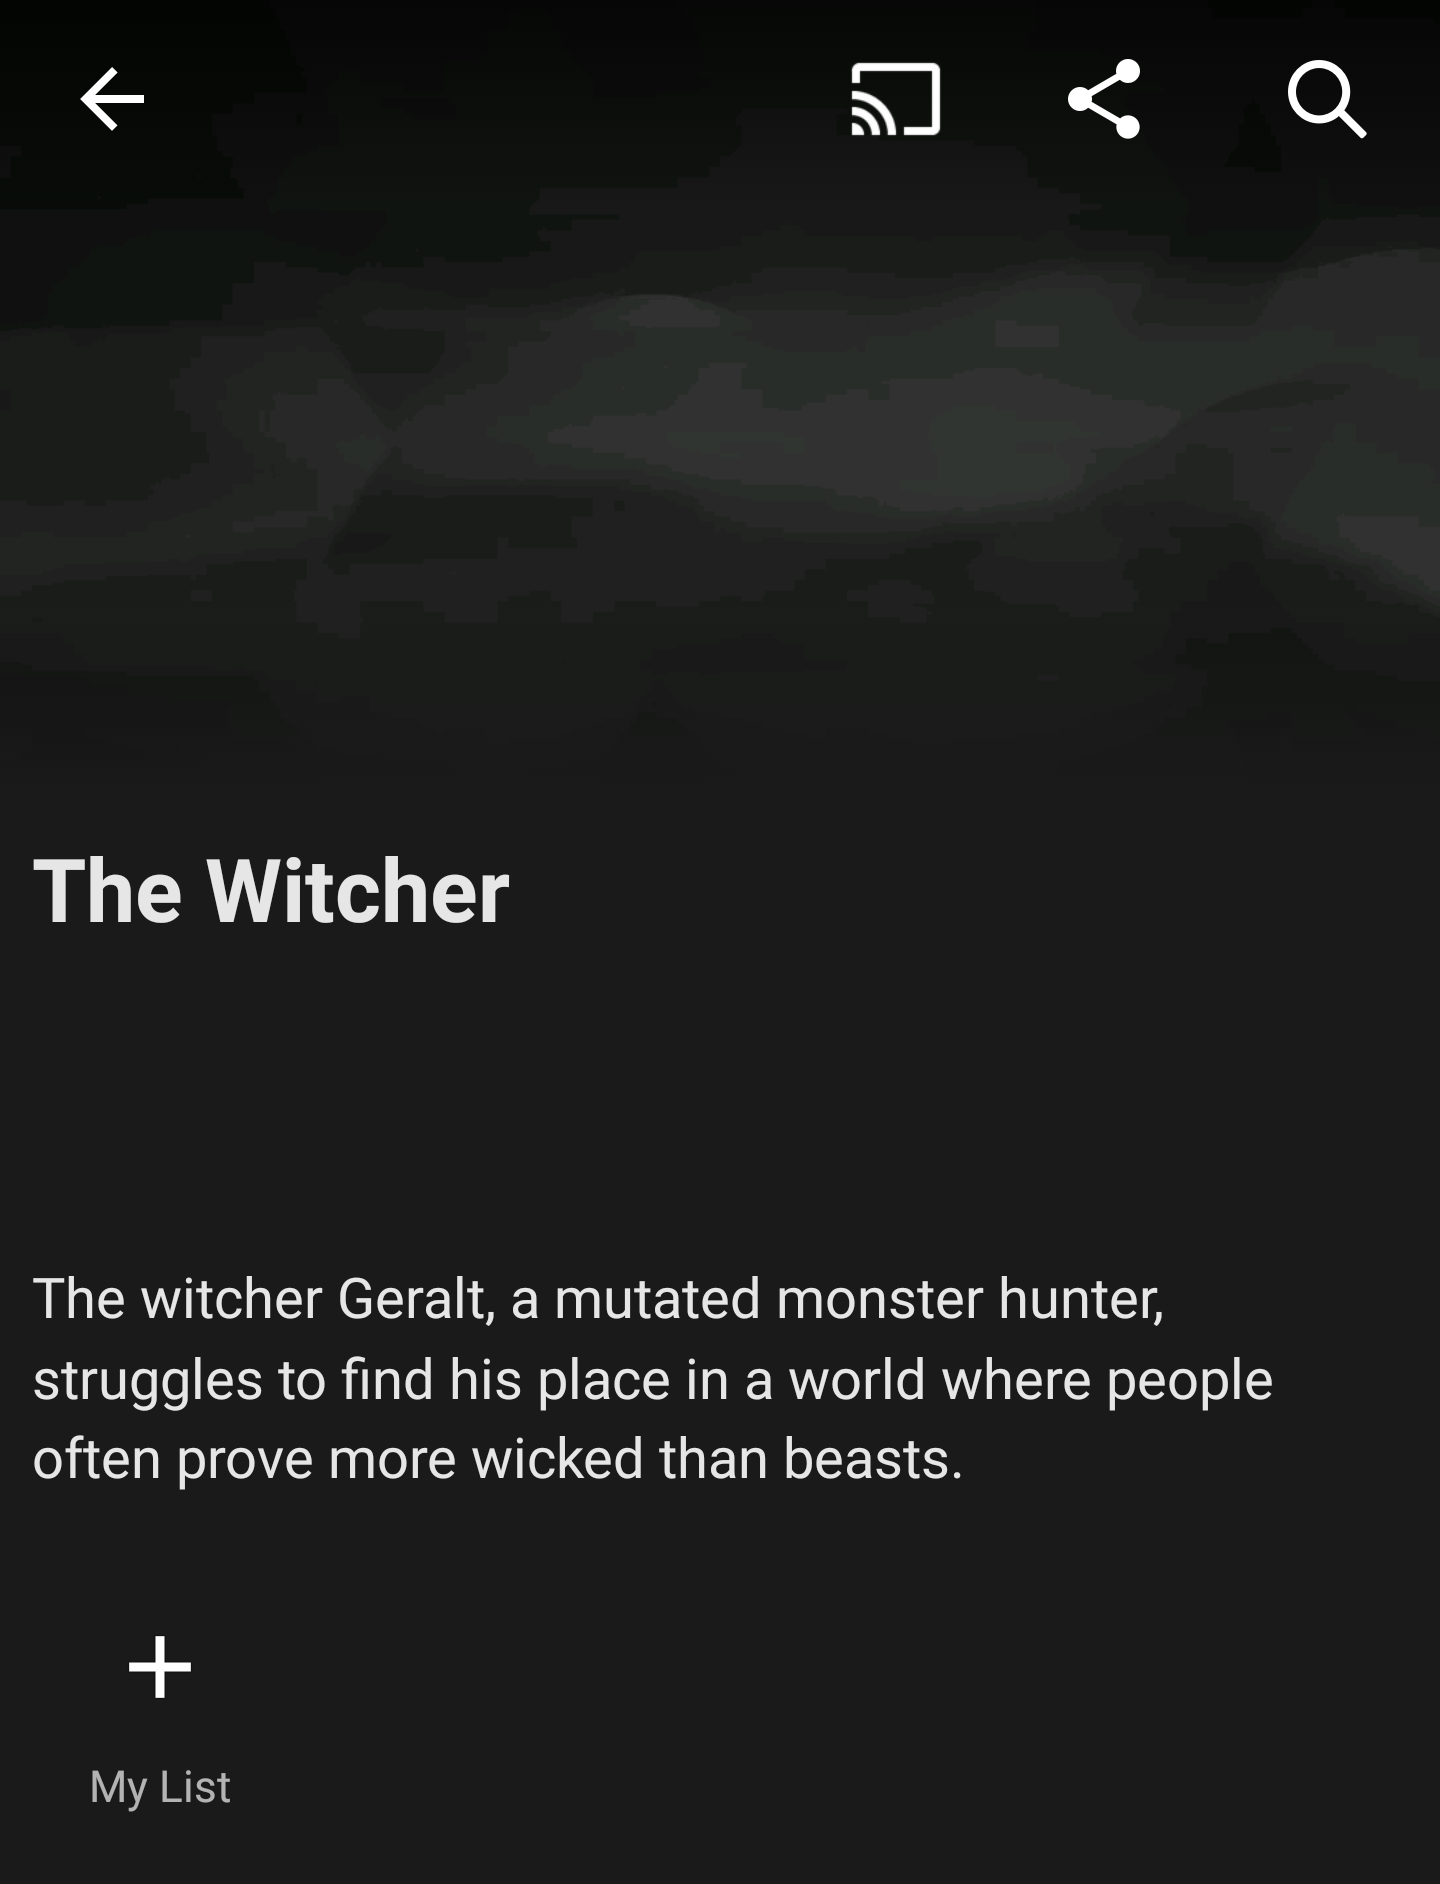 Current description for The Witcher TV series on Netflix #TheWitcher3 #PS4 #WILDHUNT #PS4share #games #gaming #TheWitcher #TheWitcher3WildHunt